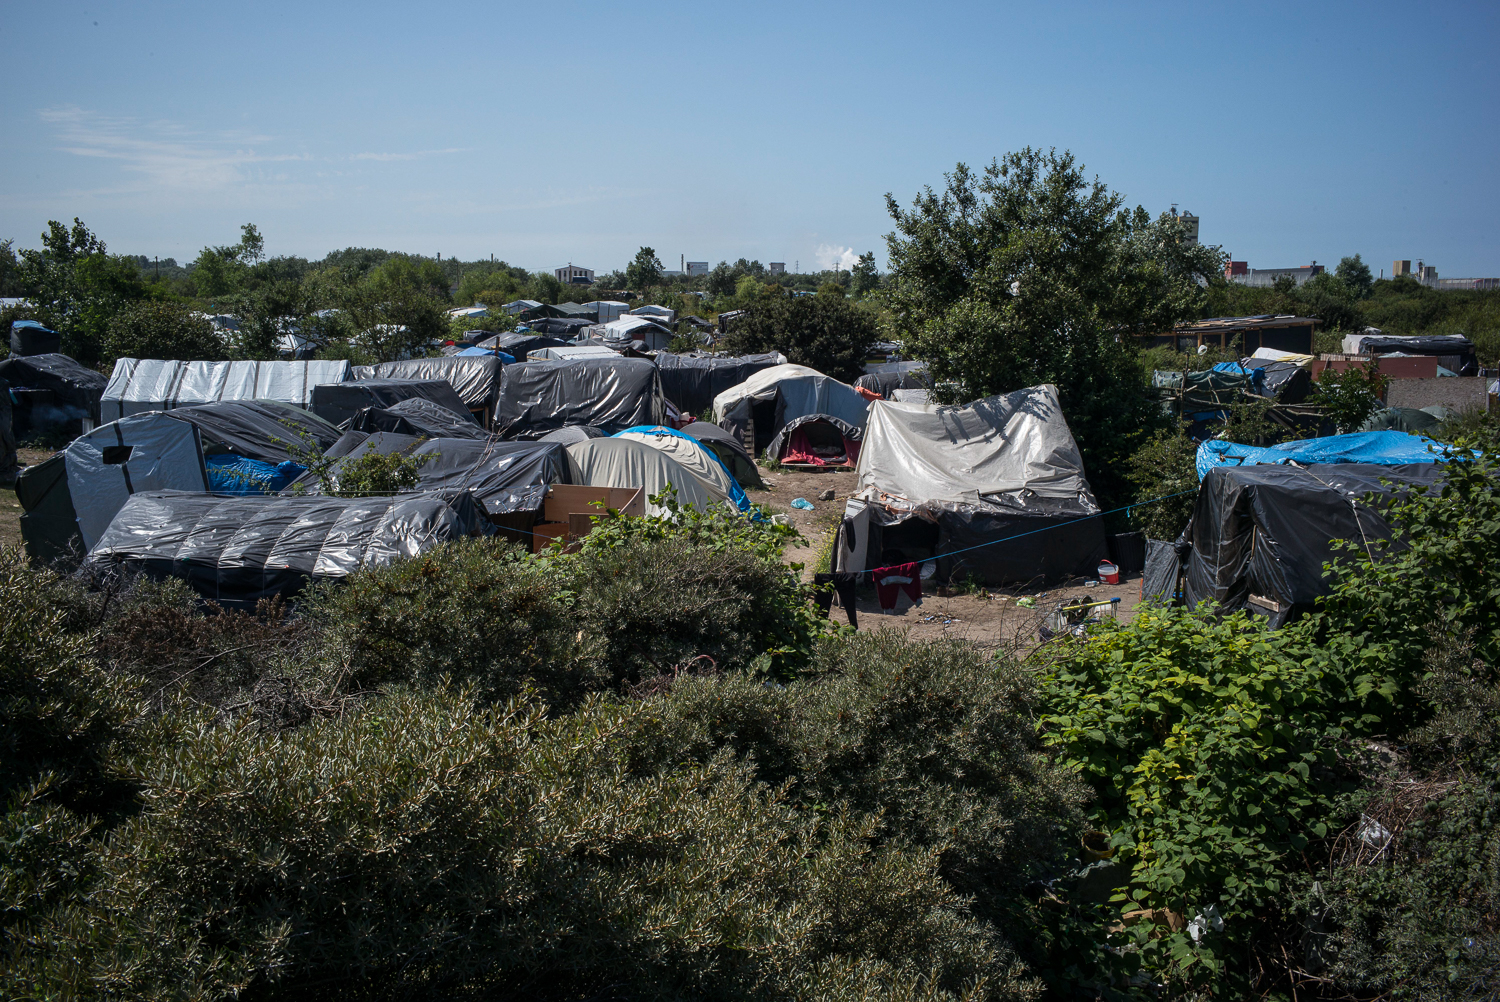 Some 3,000 migrants and refugees stay in the makeshift settlement, known locally as 'the Jungle' in Calais, where they live in very difficult conditions. [Olivier Laban Mattei/UNHCR]